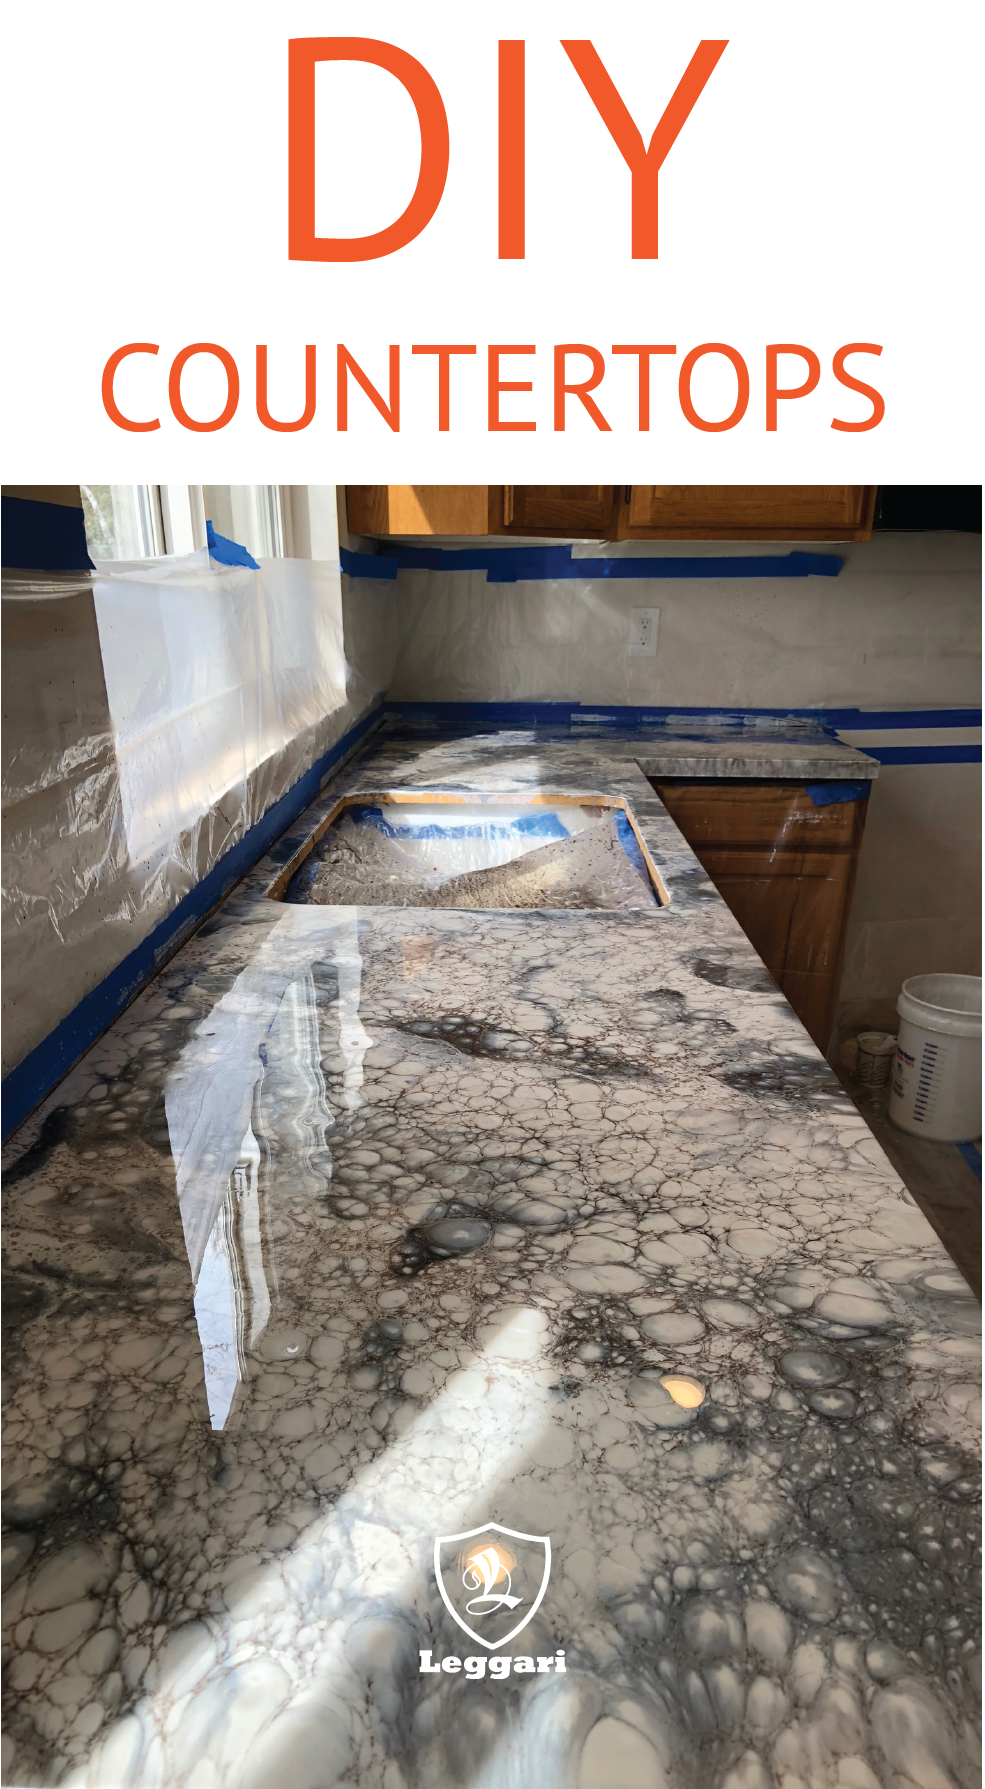 Follow Our Step By Step Tutorials And Make Your Counters Look Like This Using Leggariproducts Vi Diy Kitchen Countertops Diy Countertops Epoxy Countertop